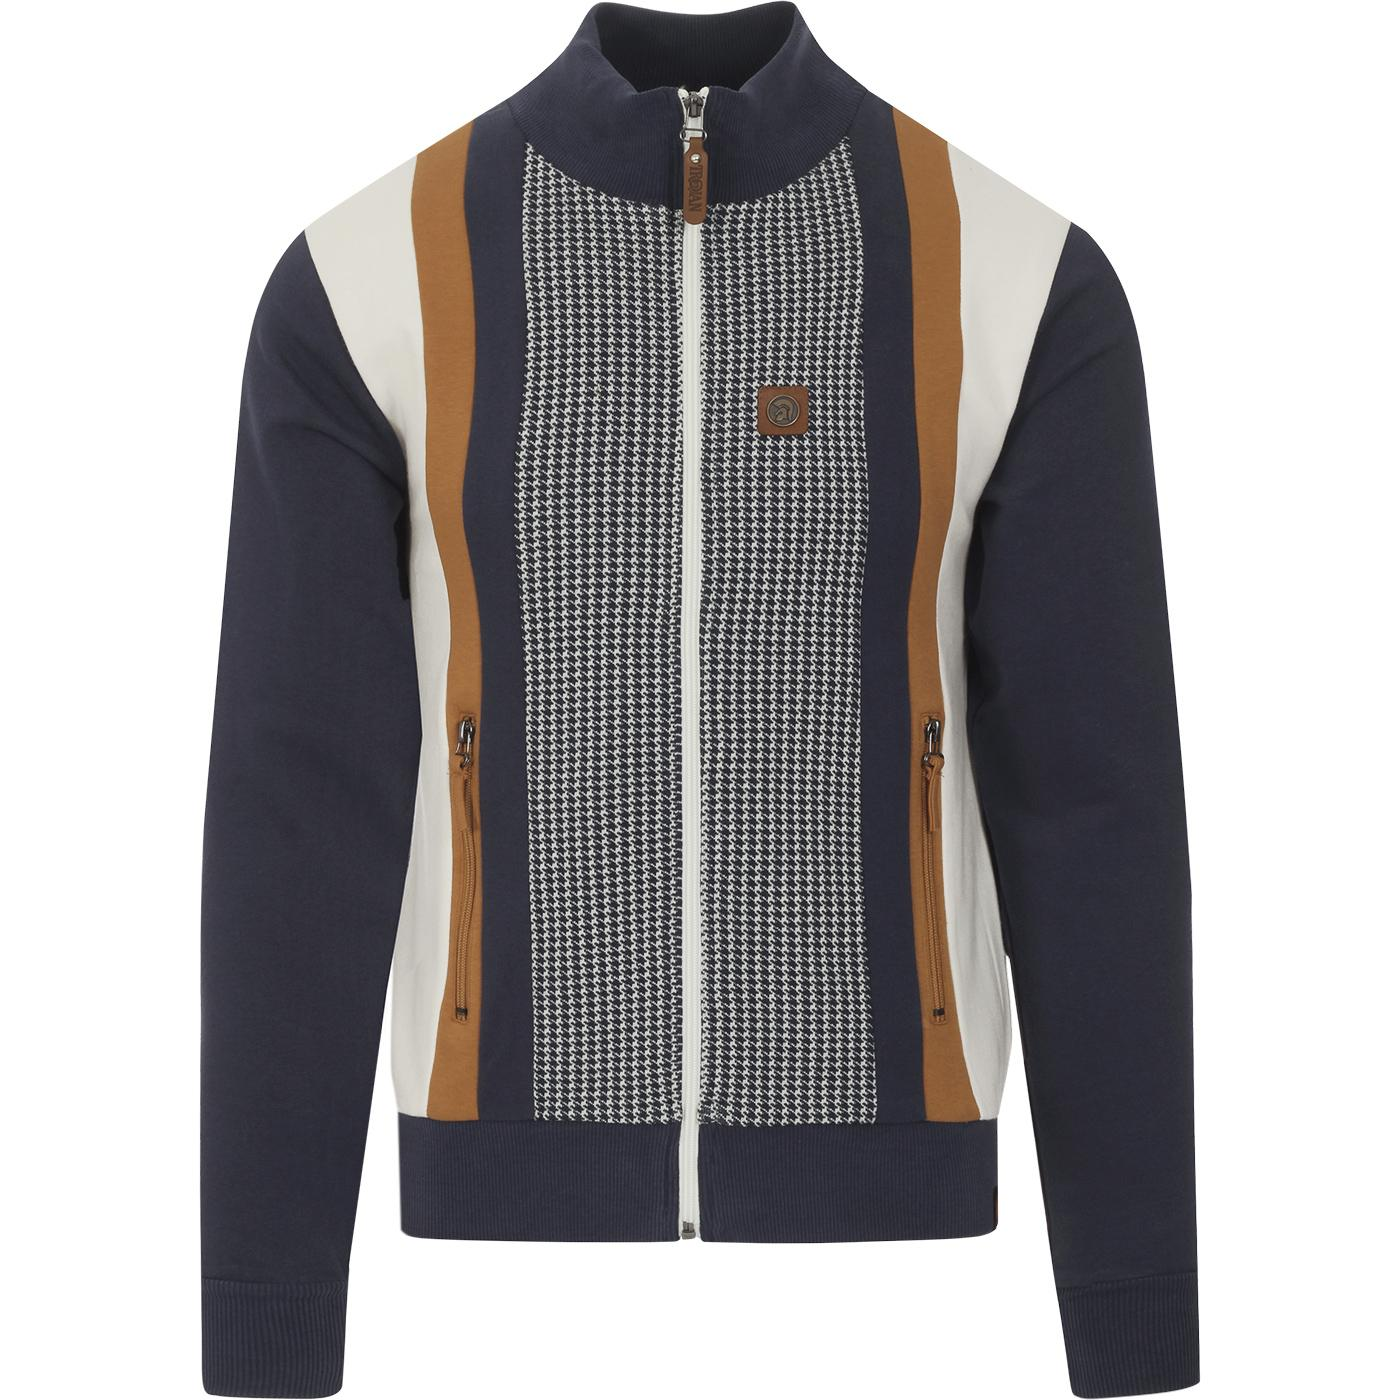 TROJAN RECORDS Mod Dogtooth Stripe Panel Track Top